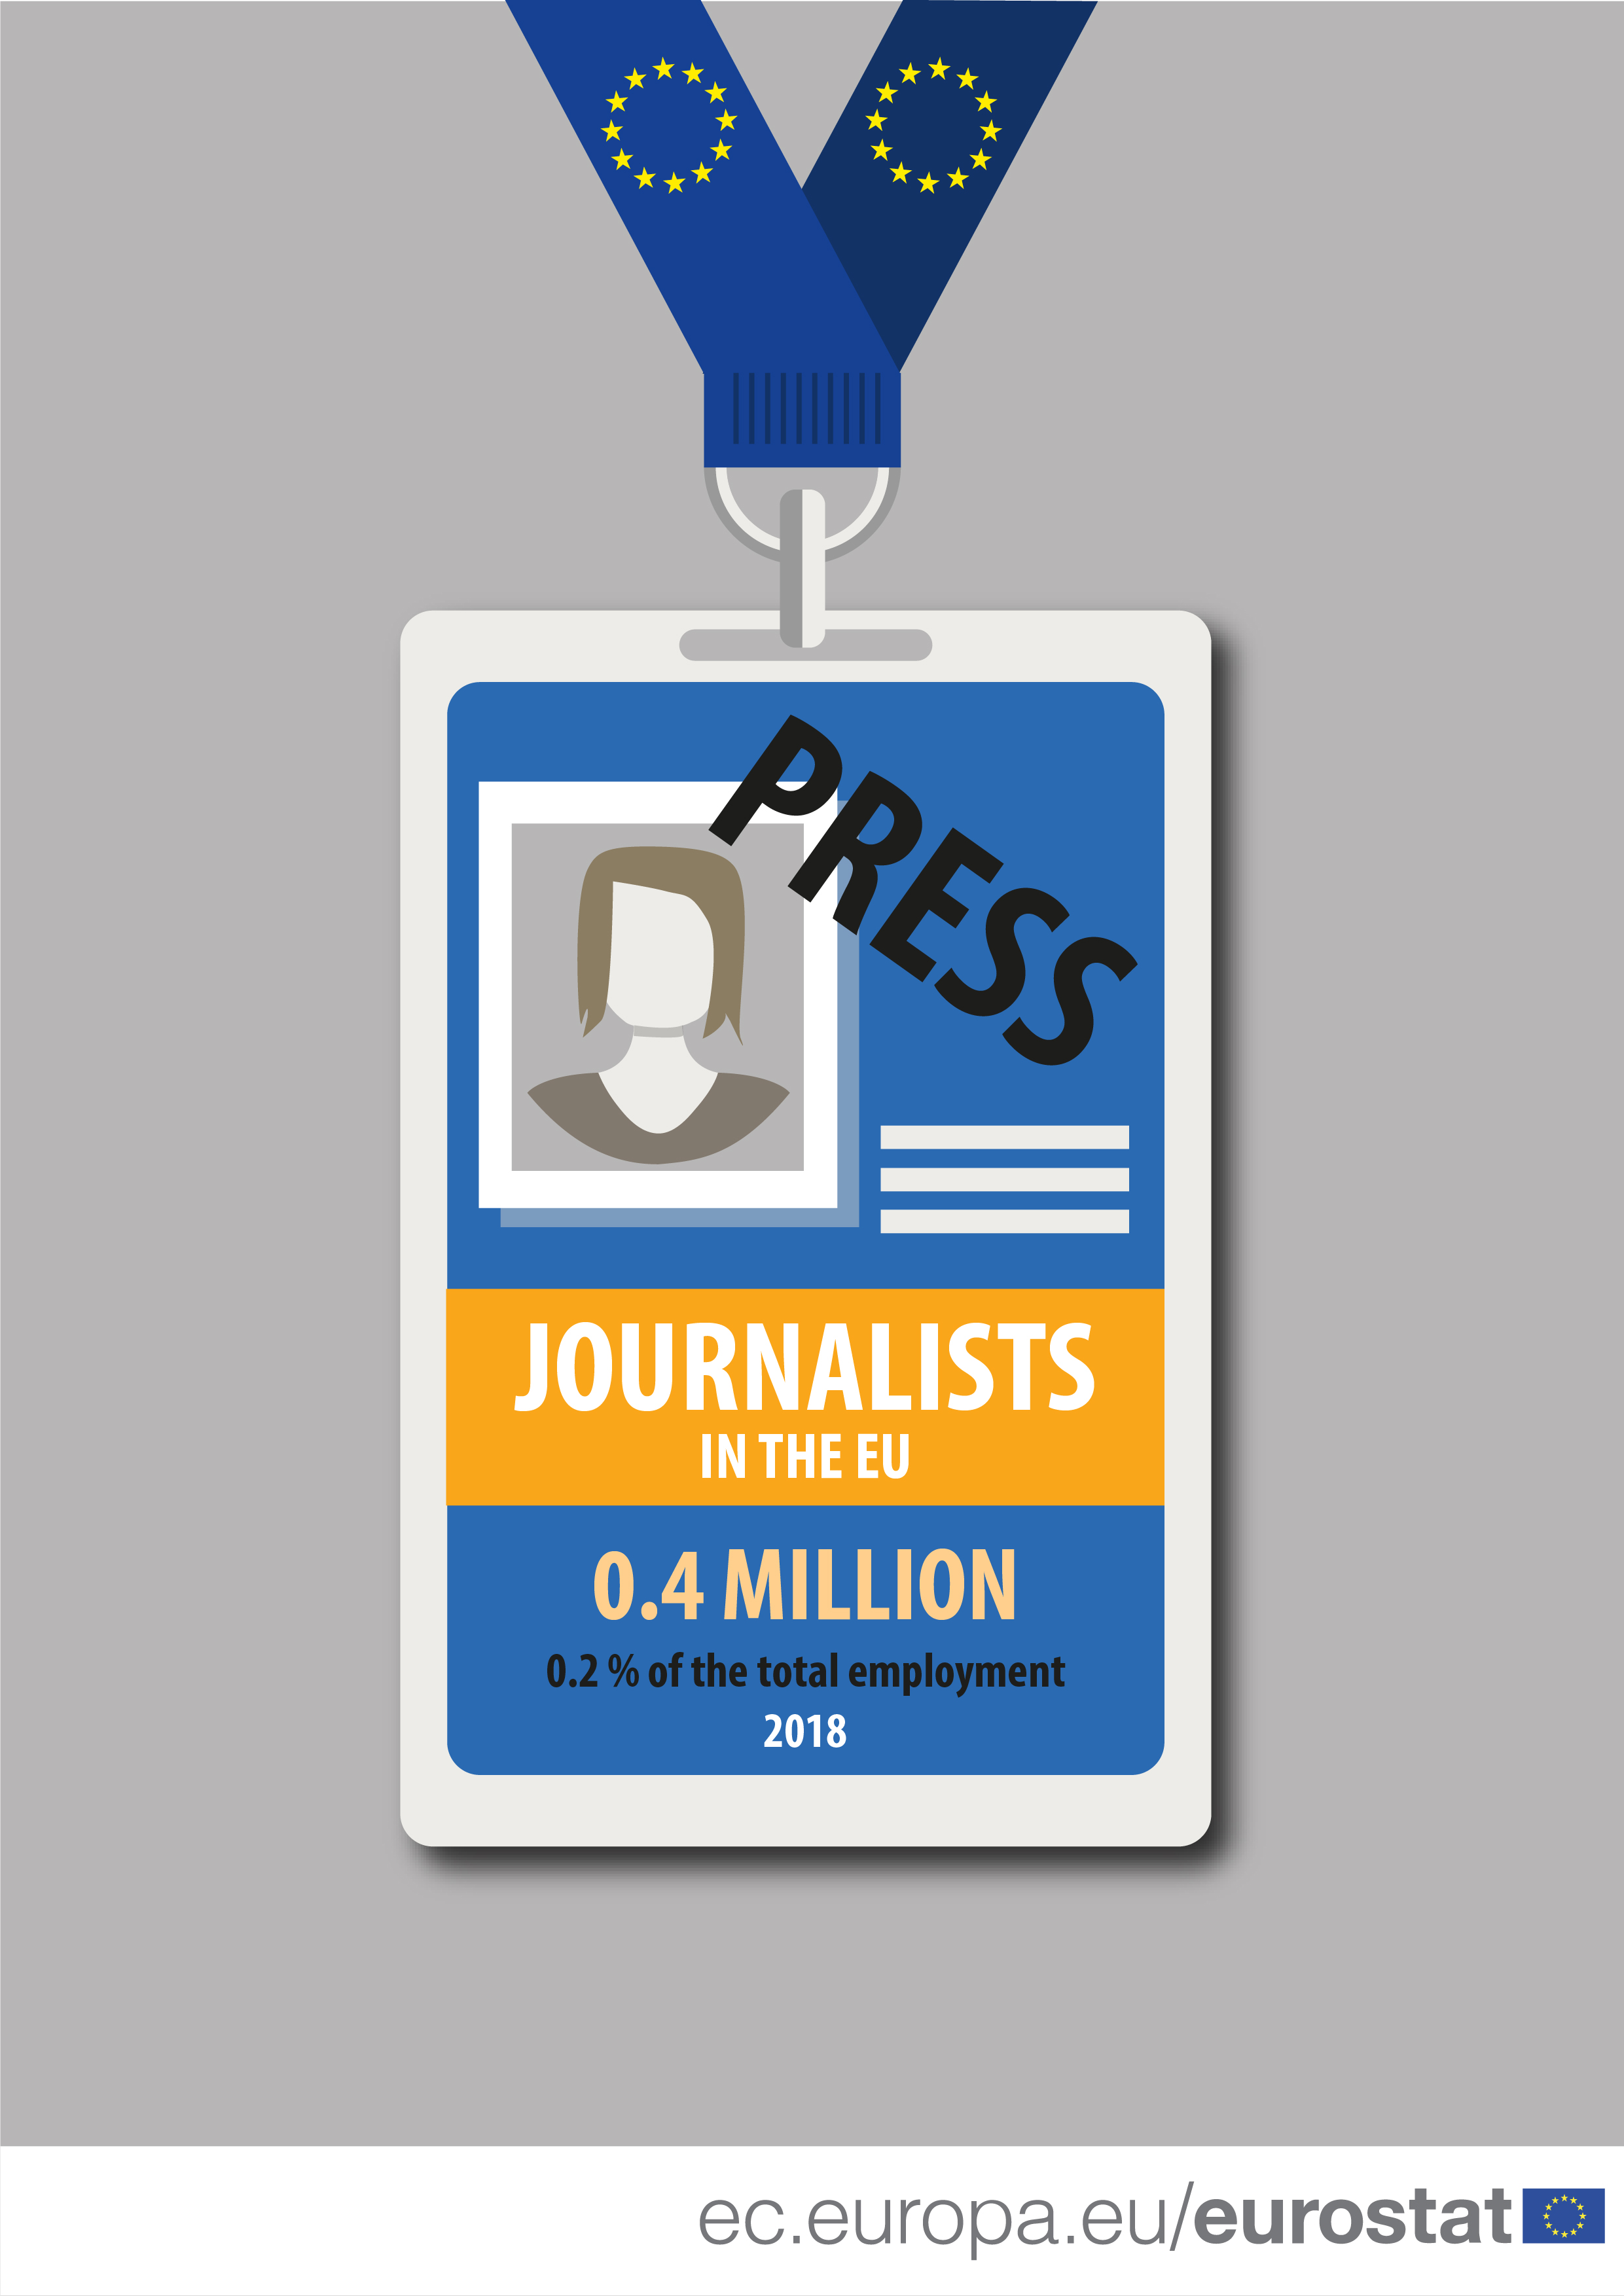 Infographic showing the number of journalists in 2018